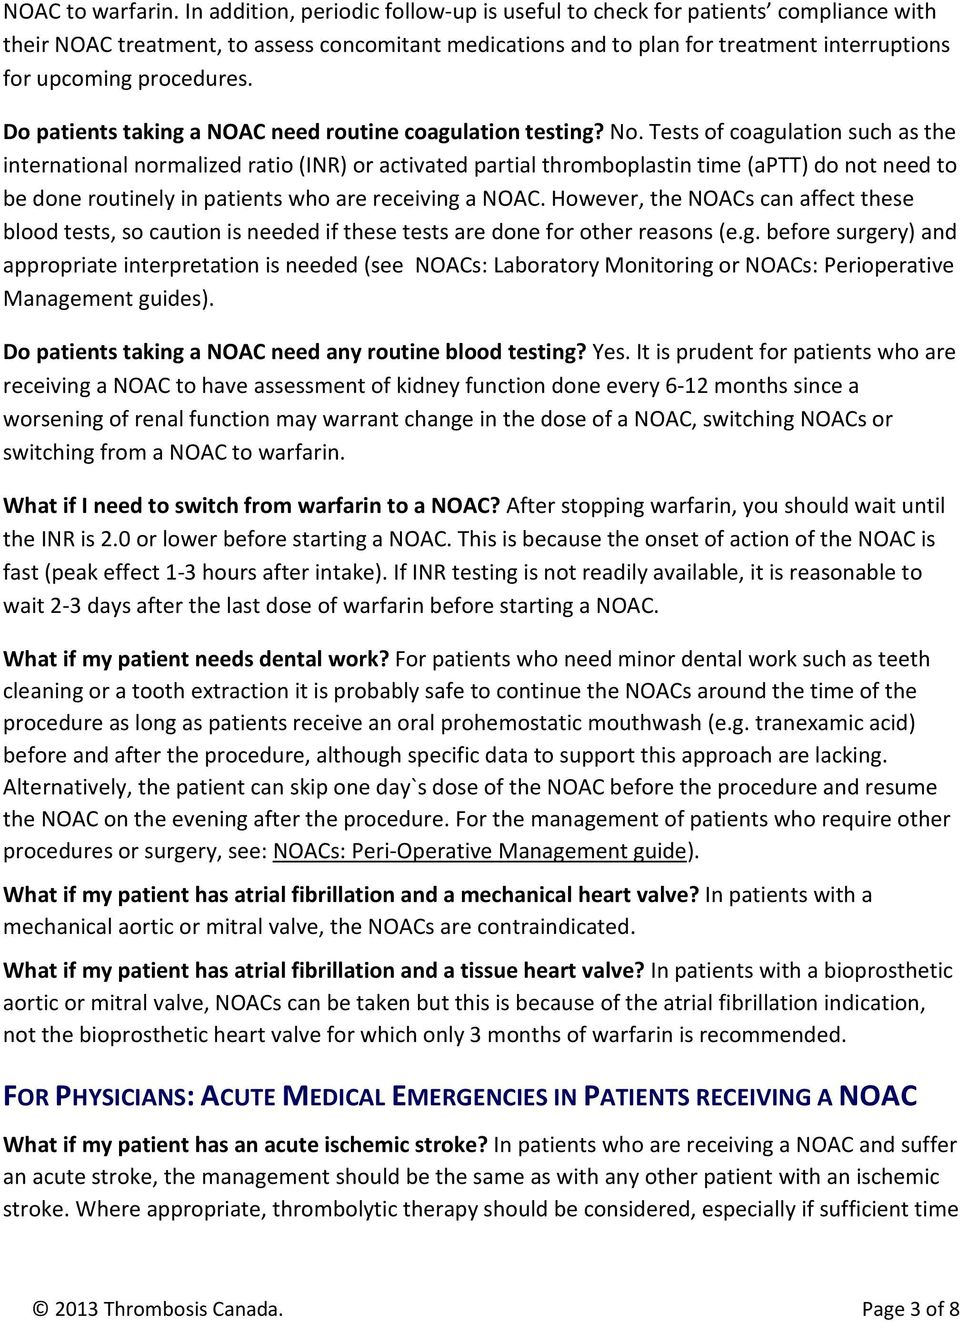 Do patients taking a NOAC need routine coagulation testing? No.